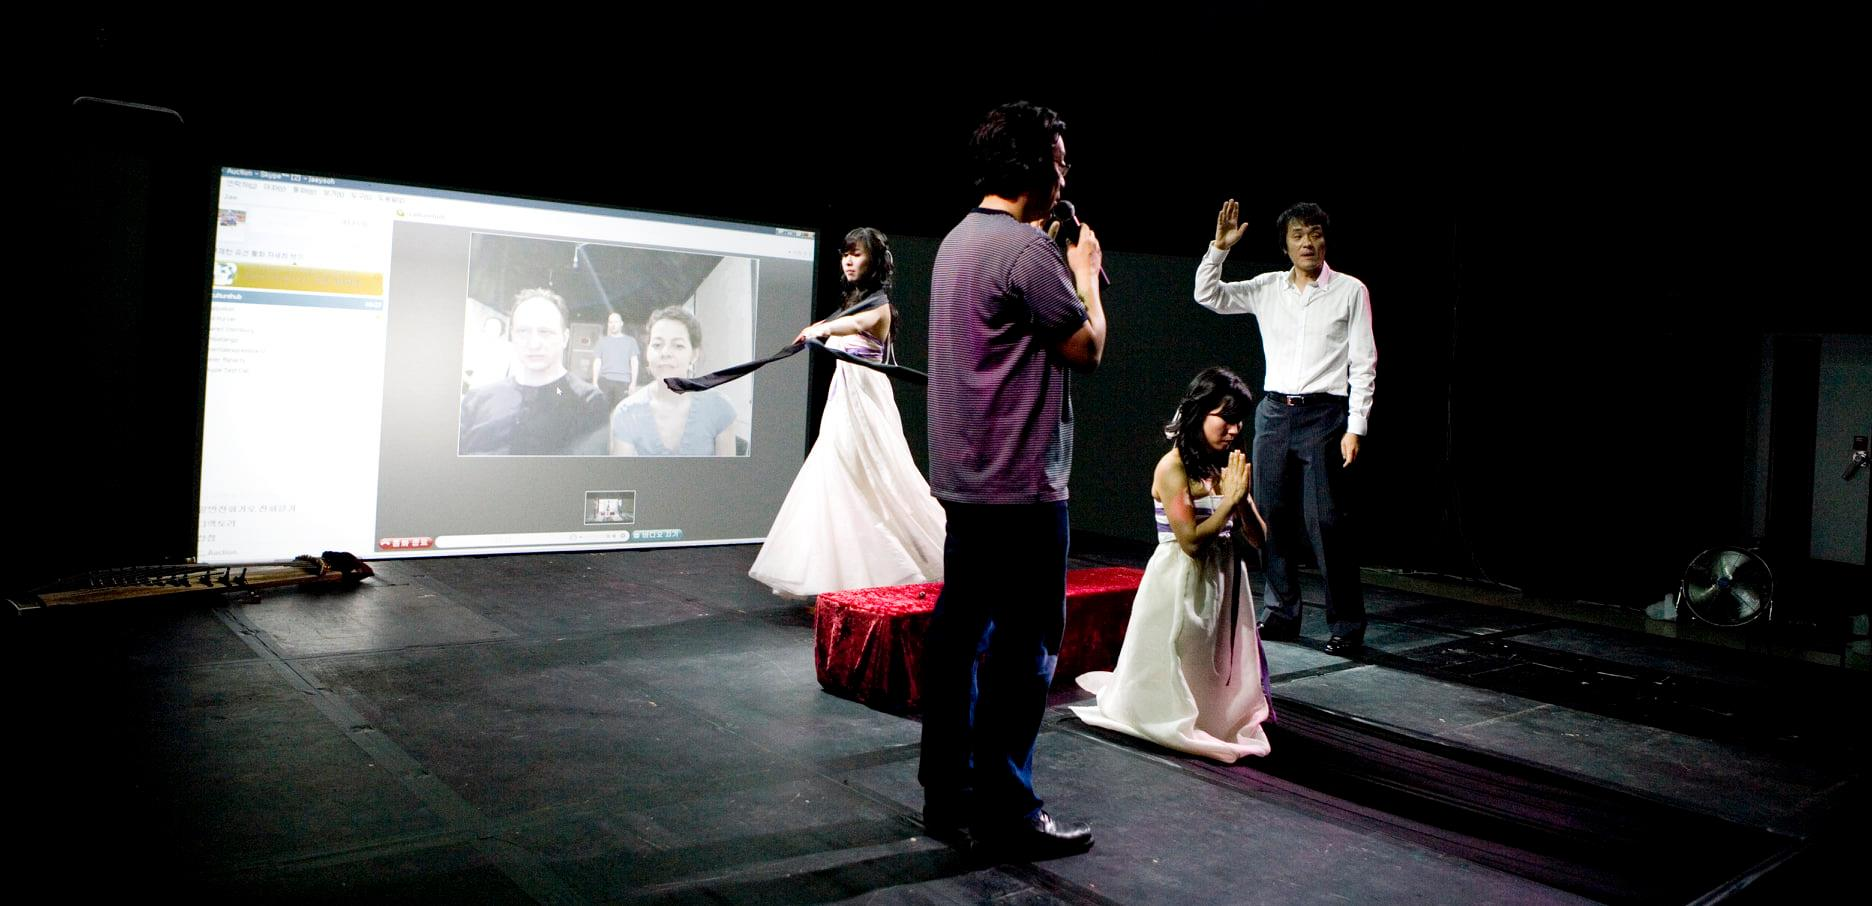 performers stand in a space wearing white and red in front of a projection screen with video on it